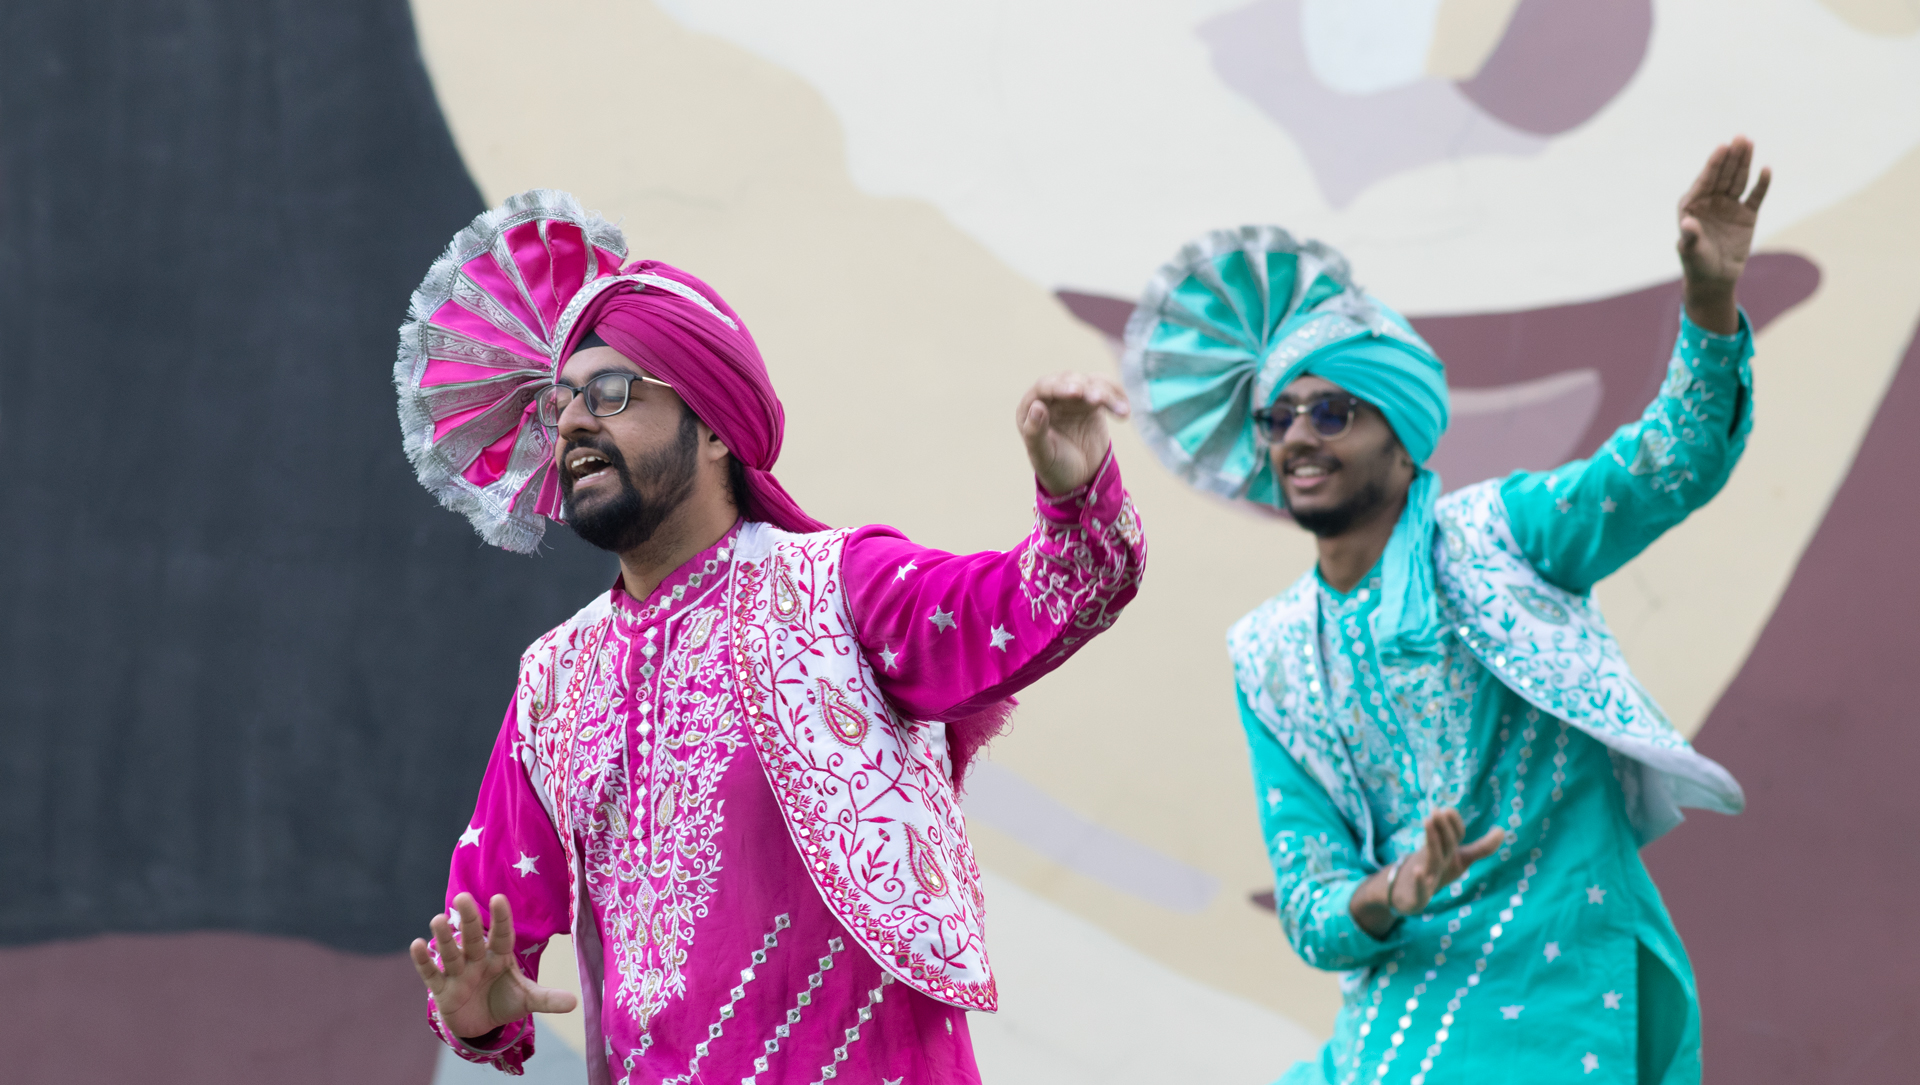 [Dance Performance] Bhangra by Jigri Yaar Bhangra. Photo Courtesy ARTWALK